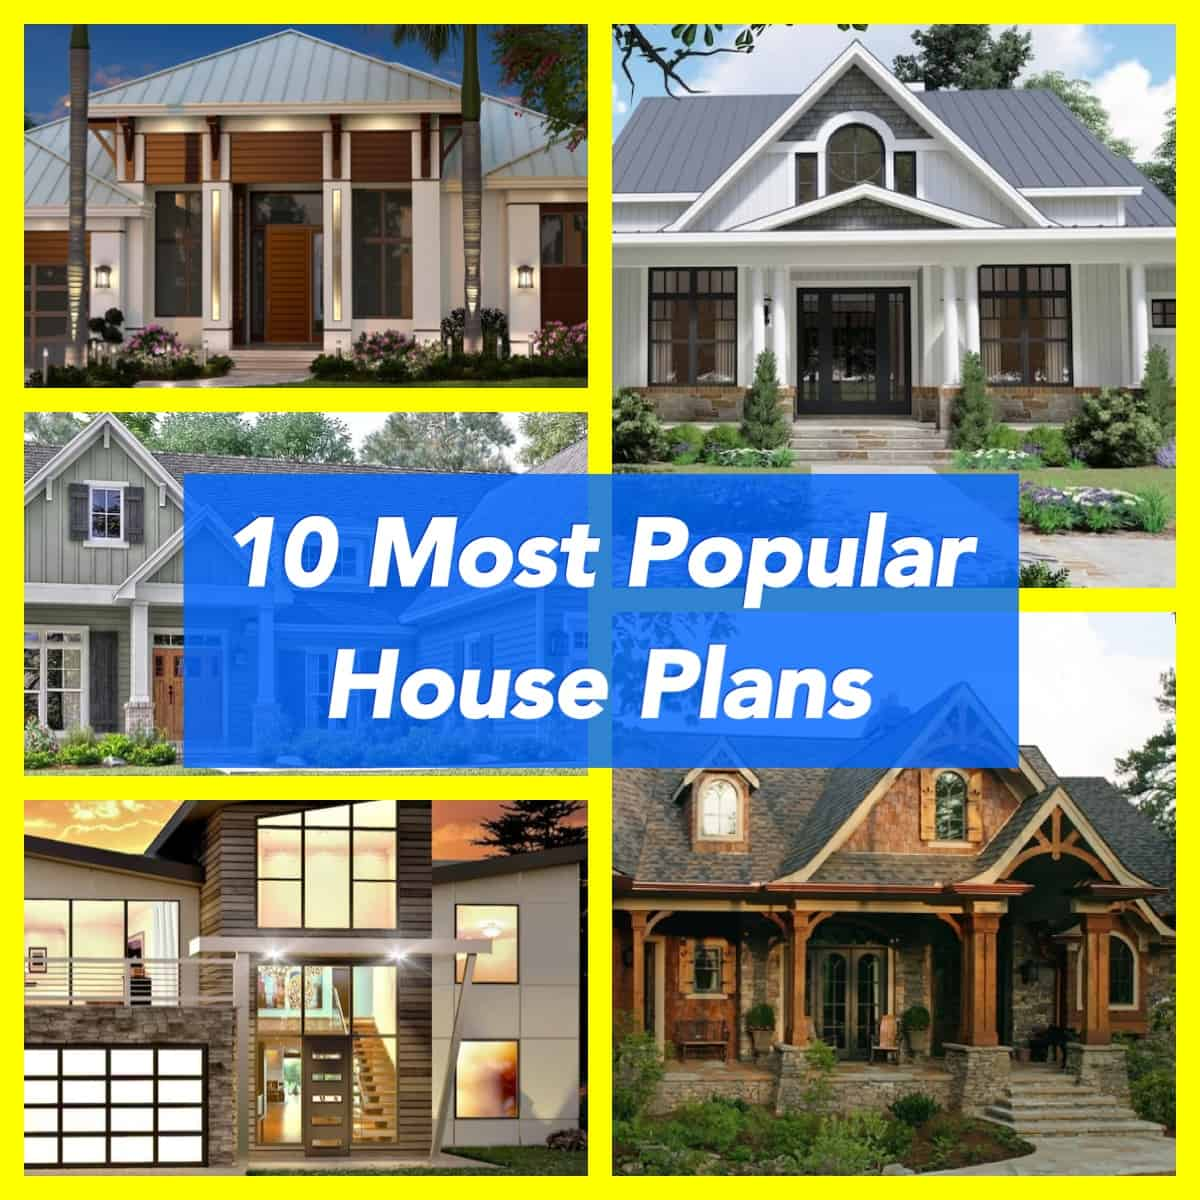 10 Most Popular House Plans Collage